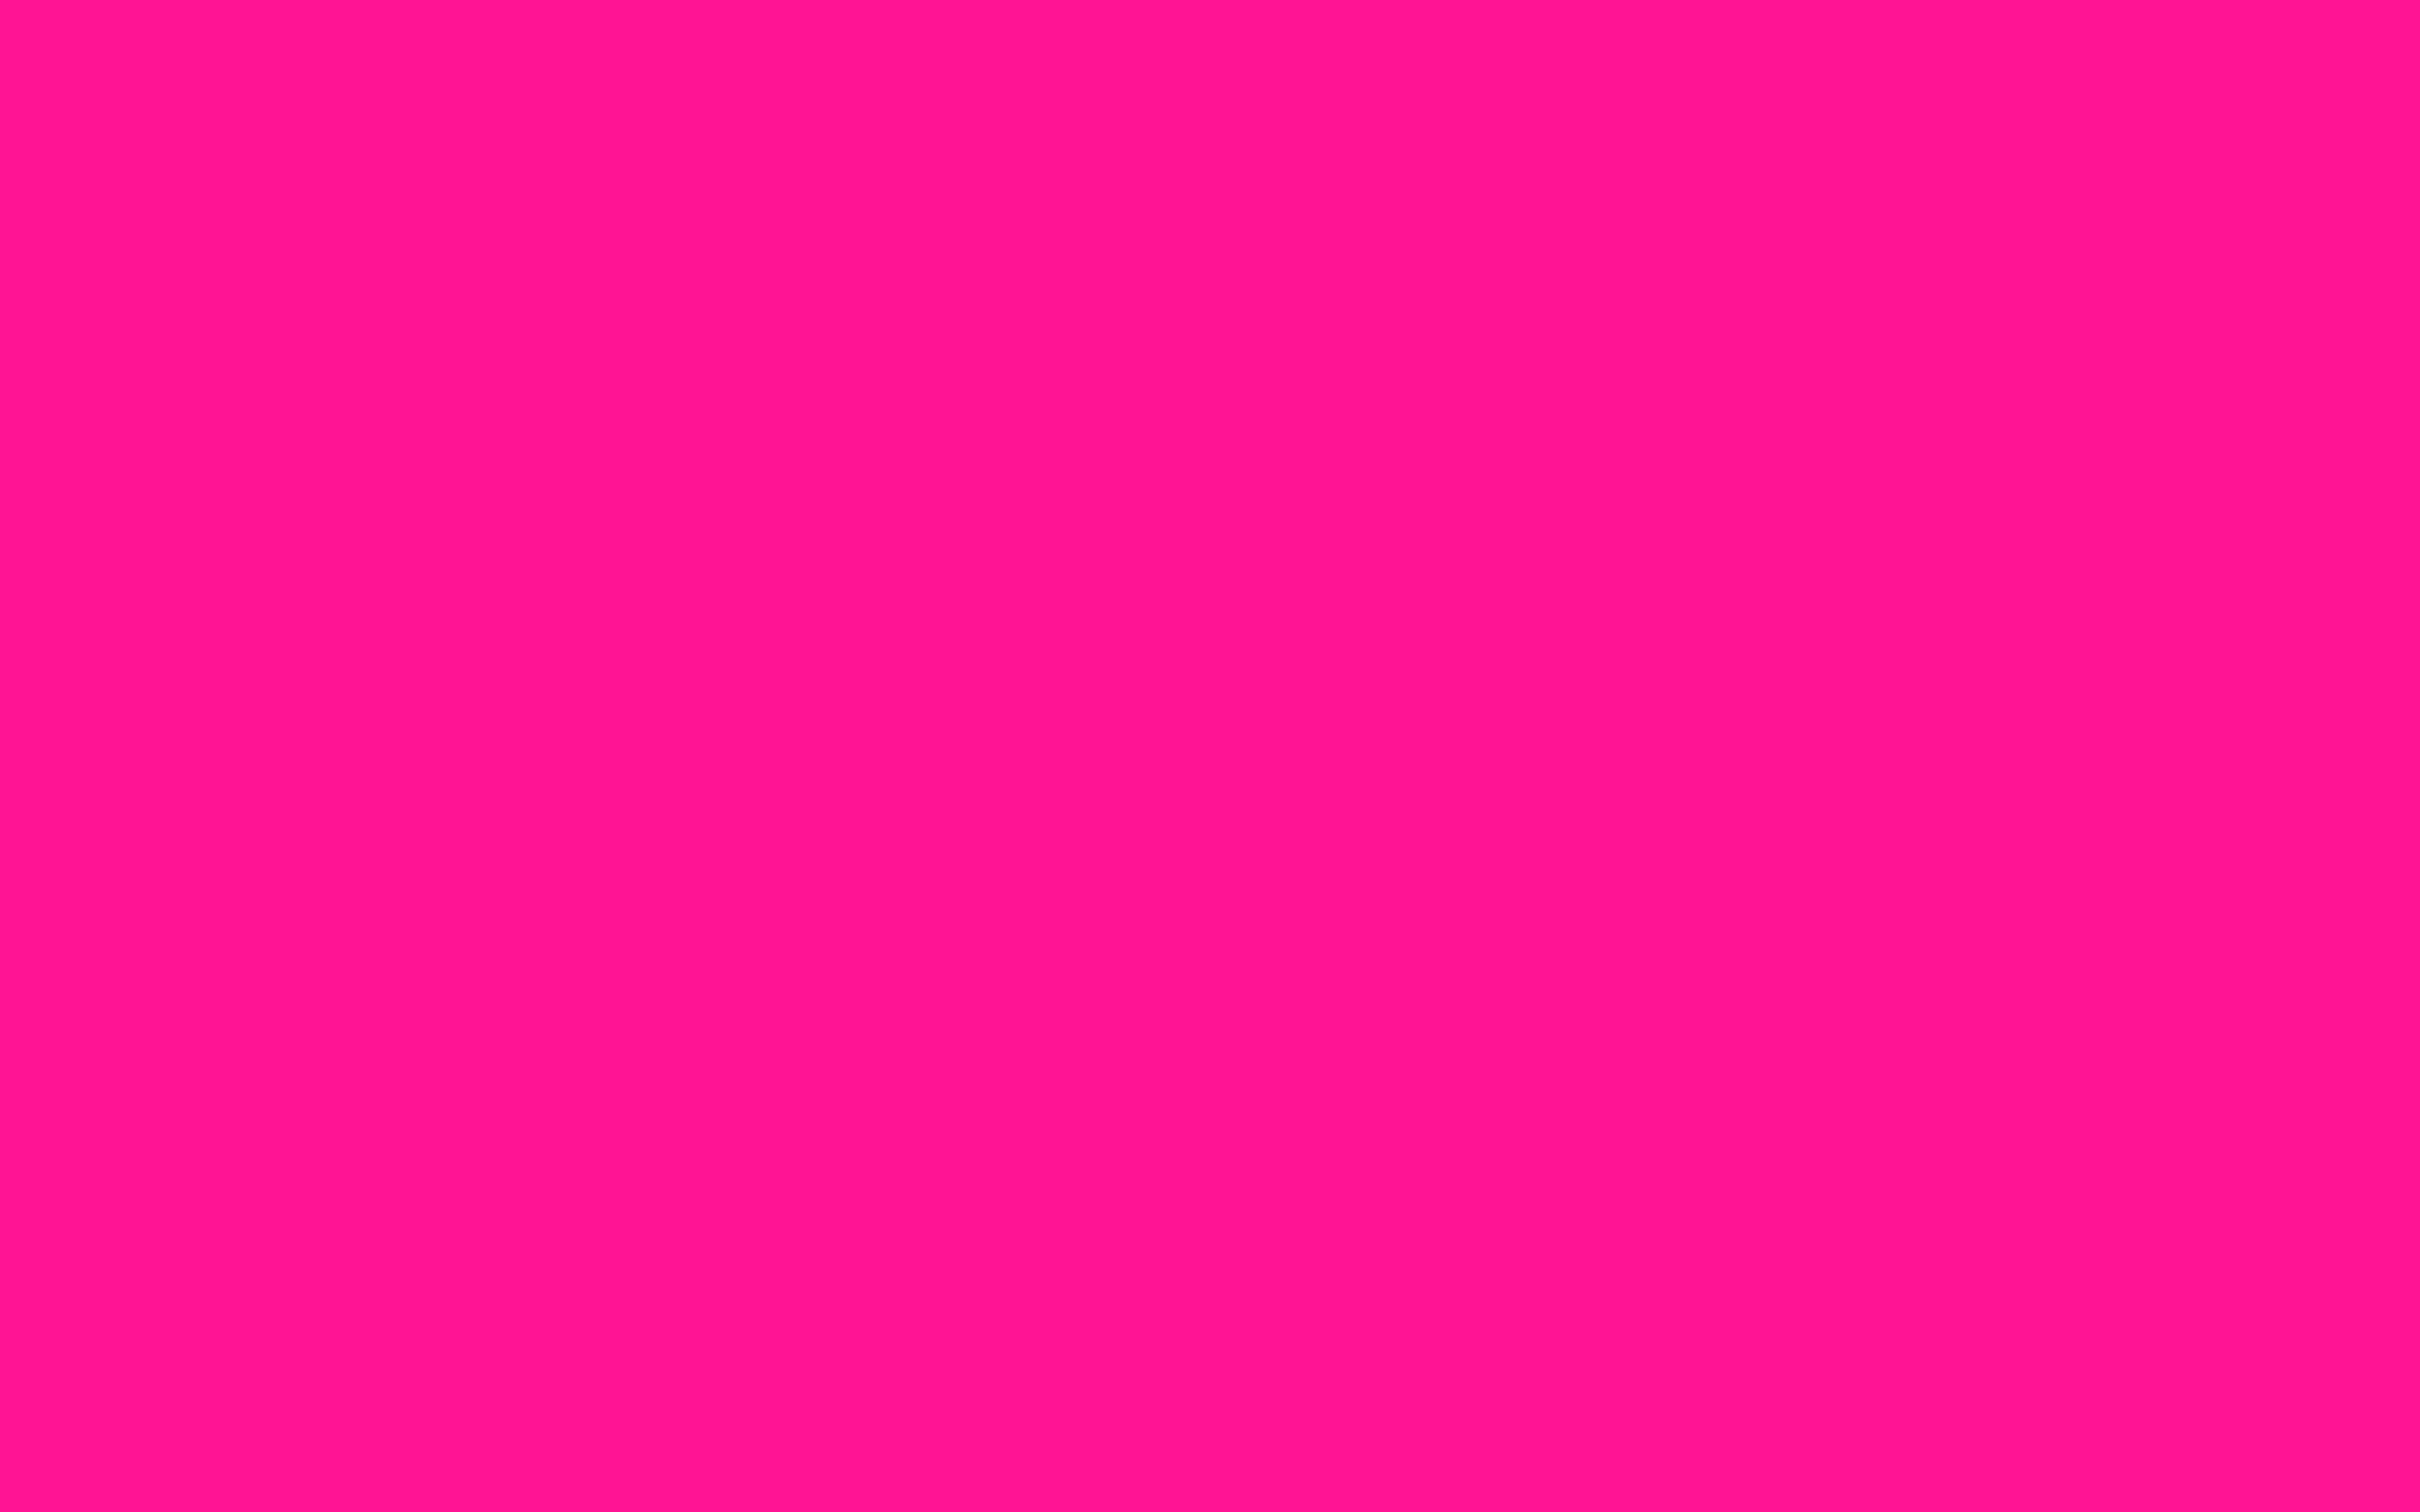 2880x1800 Deep Pink Solid Color Background